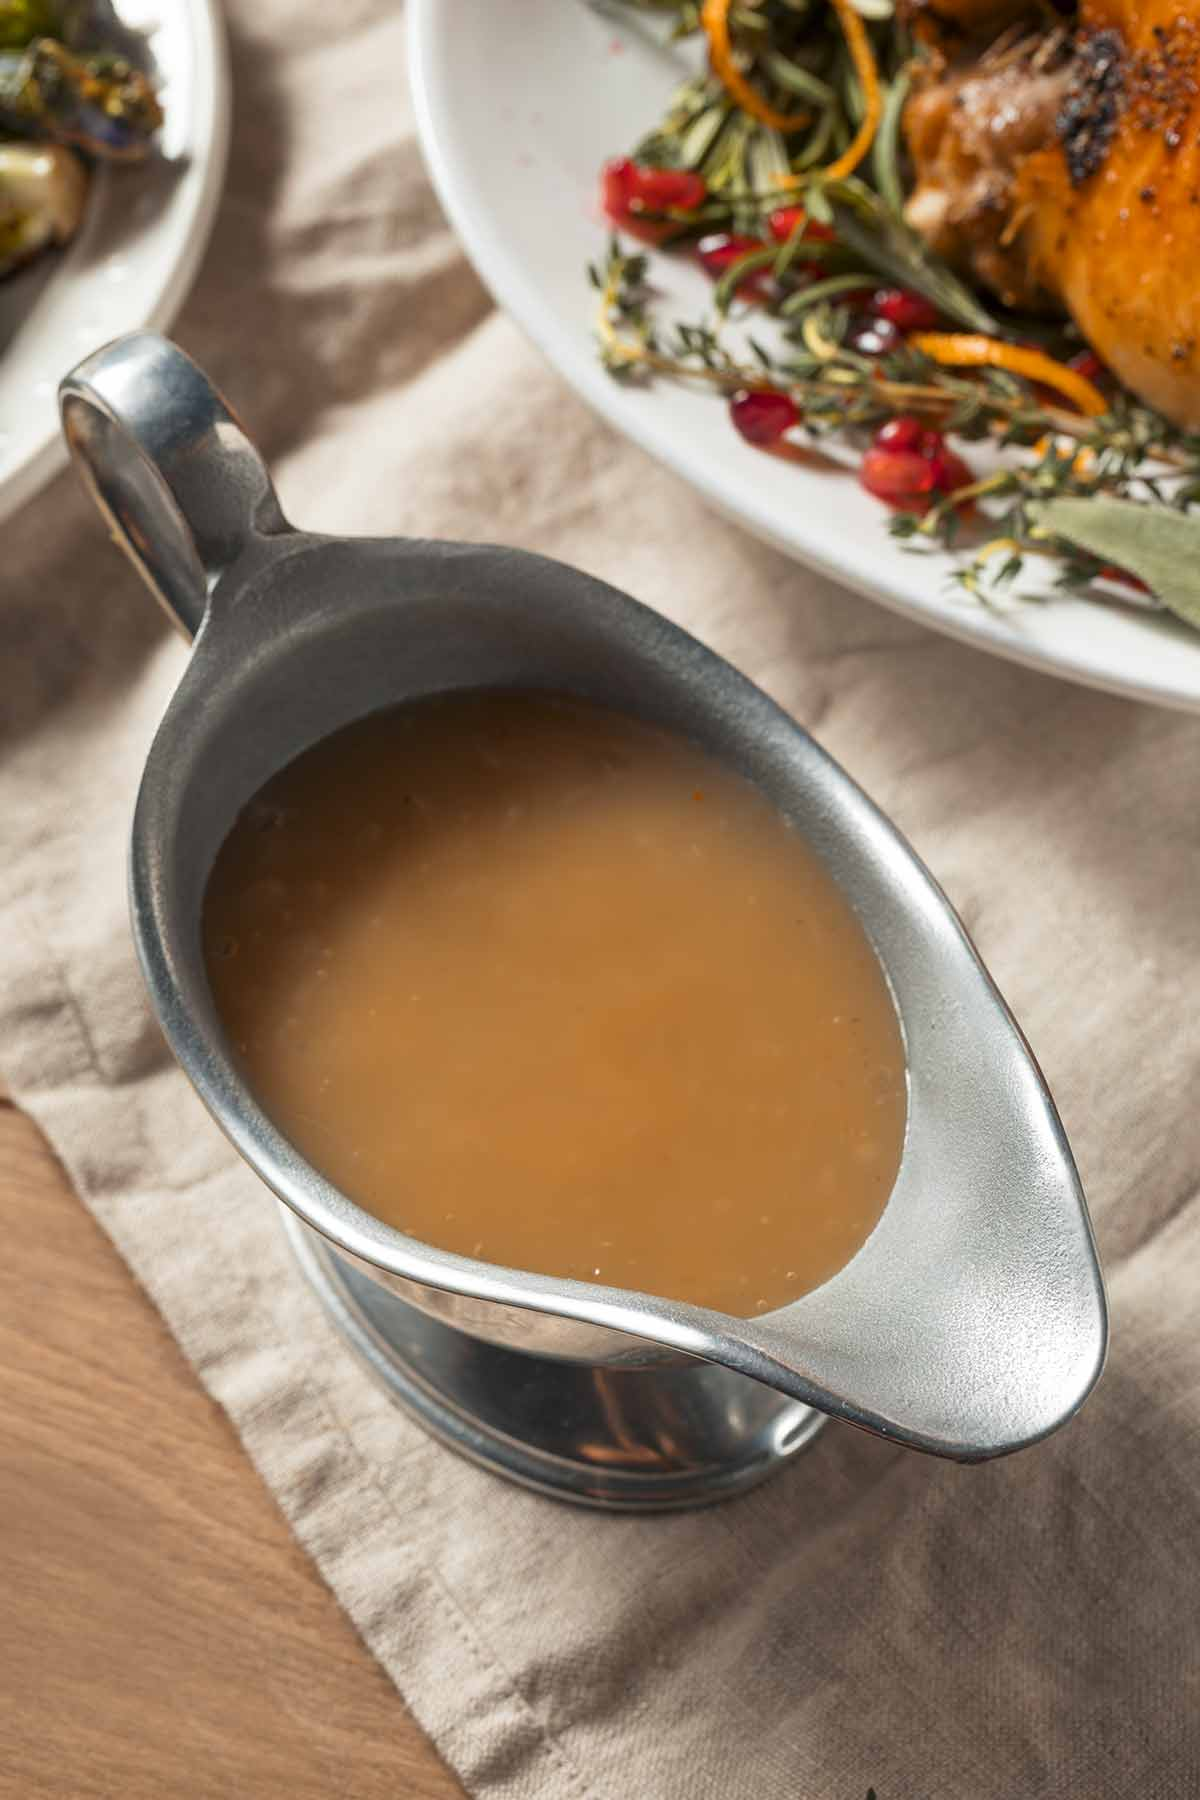 A silver gravy boat filled with gluten-free gravy on a linen cloth.